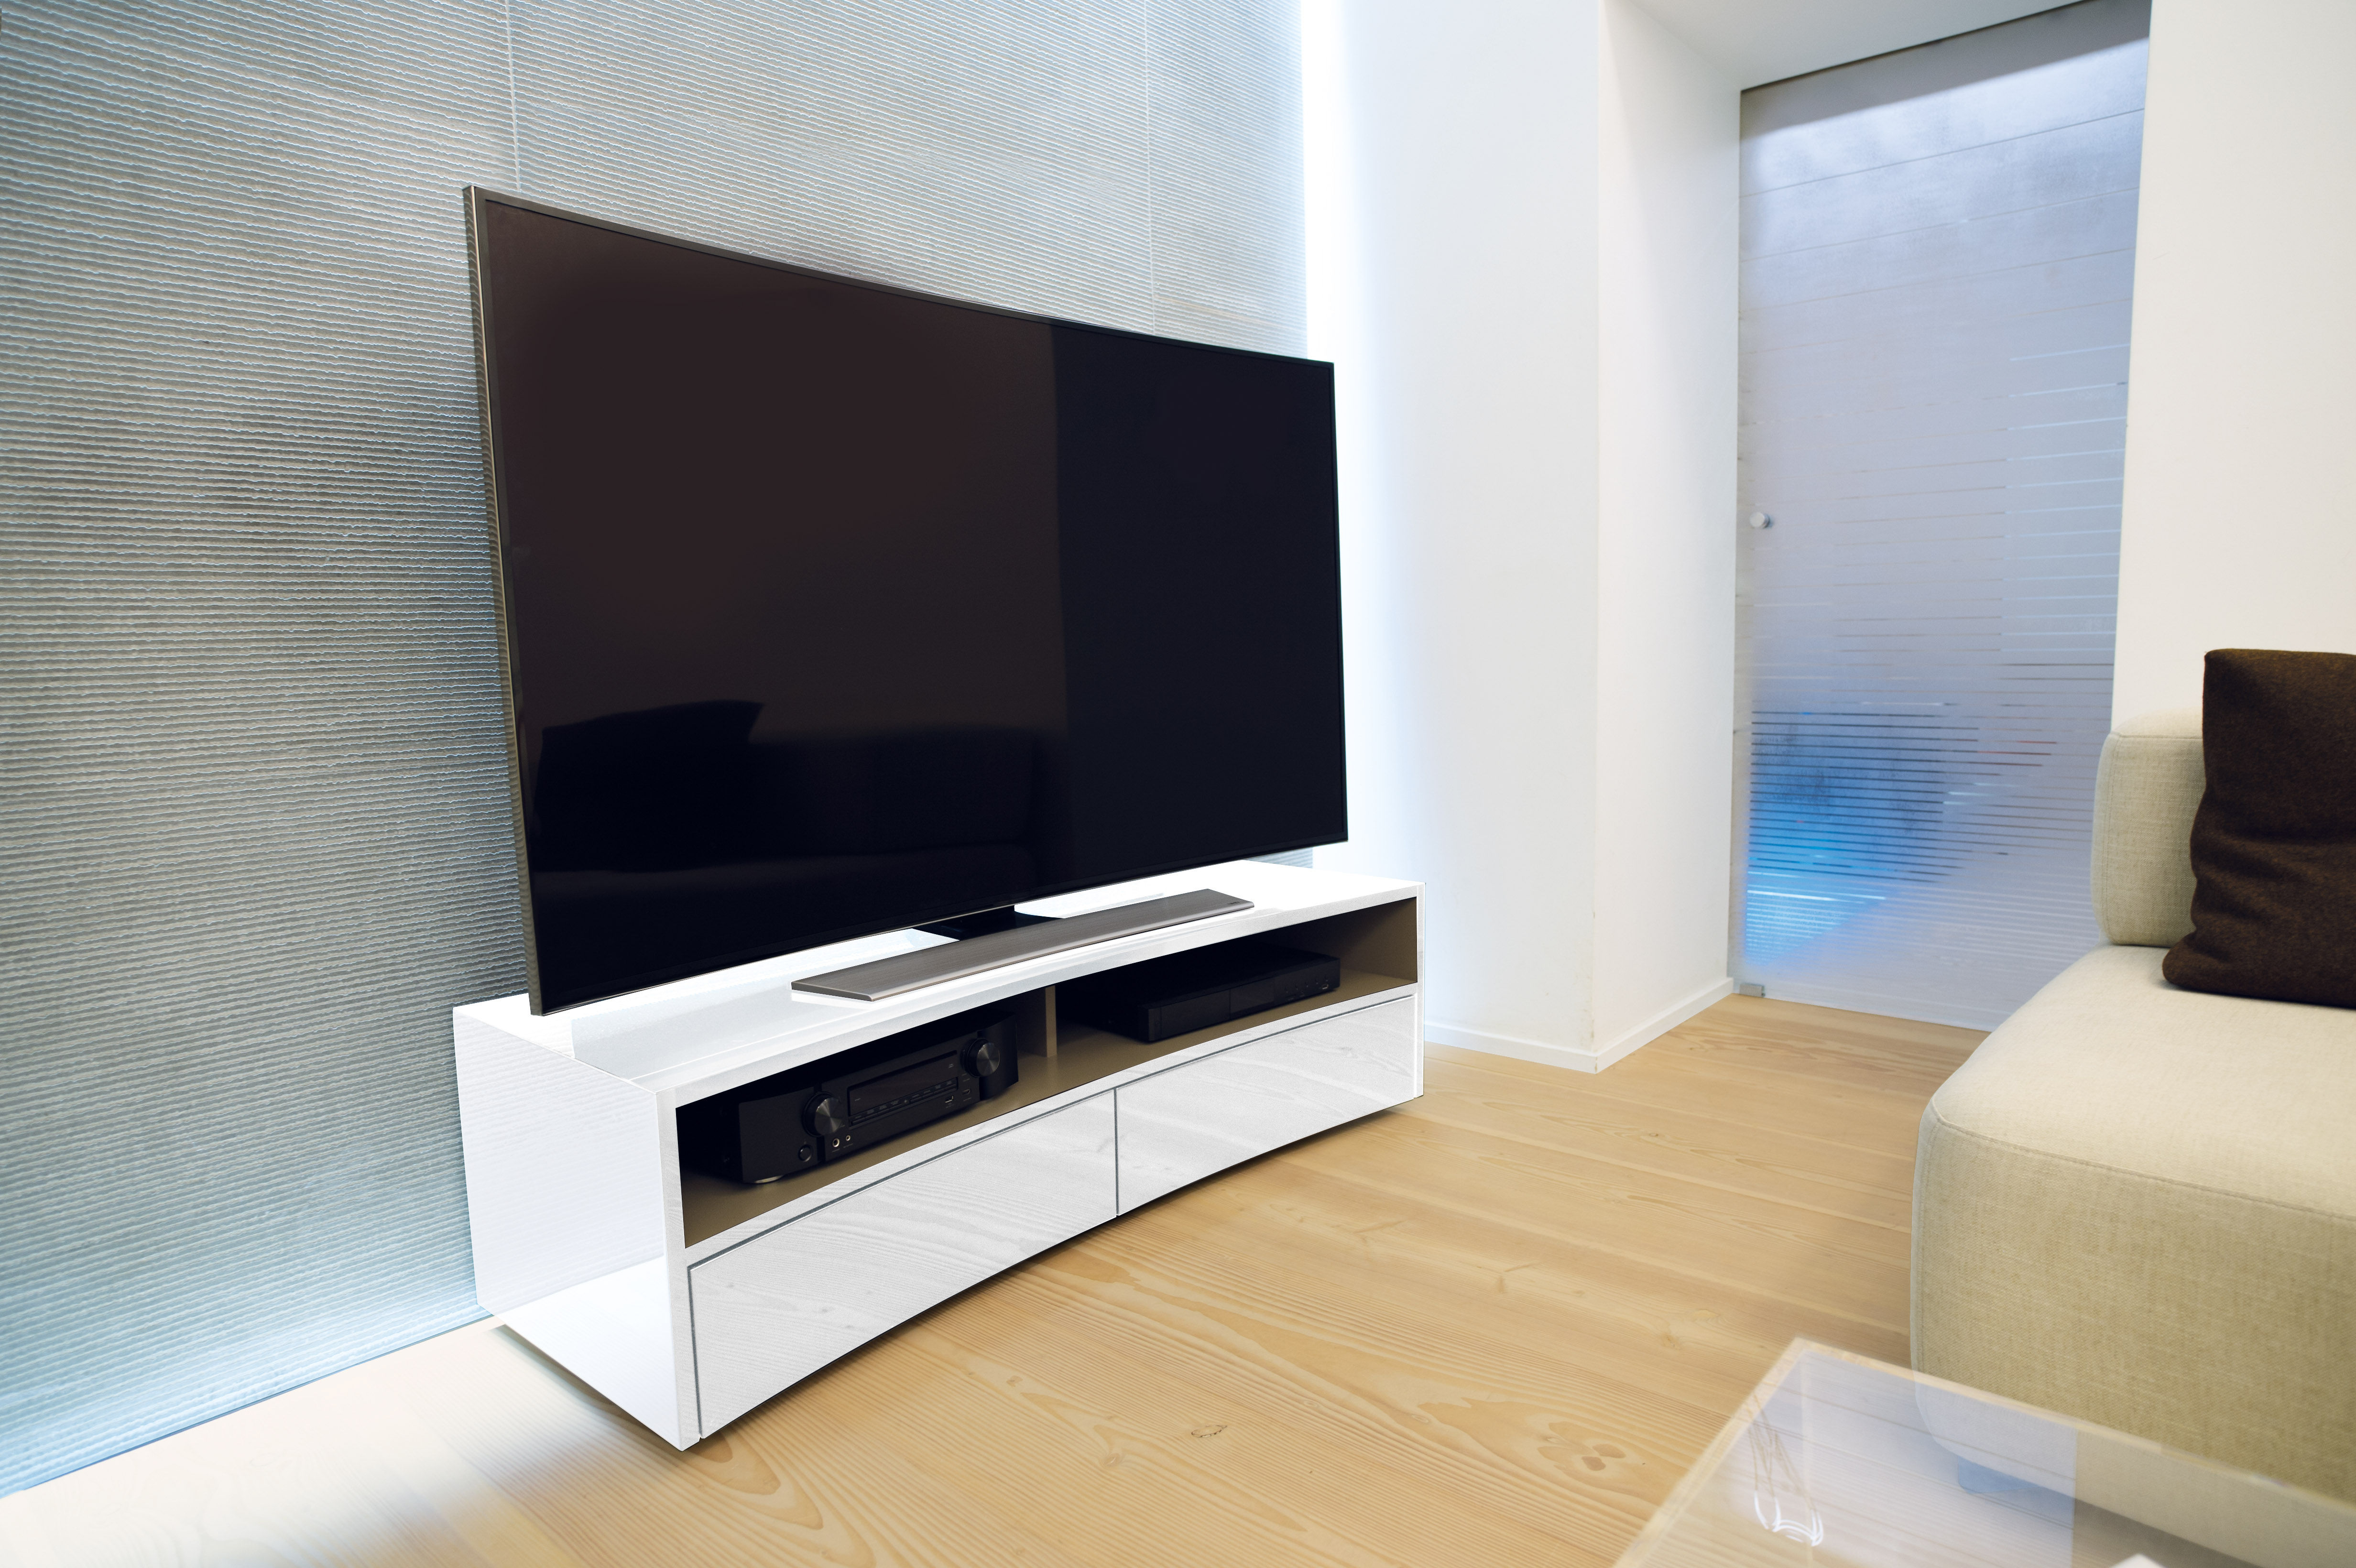 Meuble Tv Grand Ecran Id Es De Design Suezl Com # Grand Meuble Tv